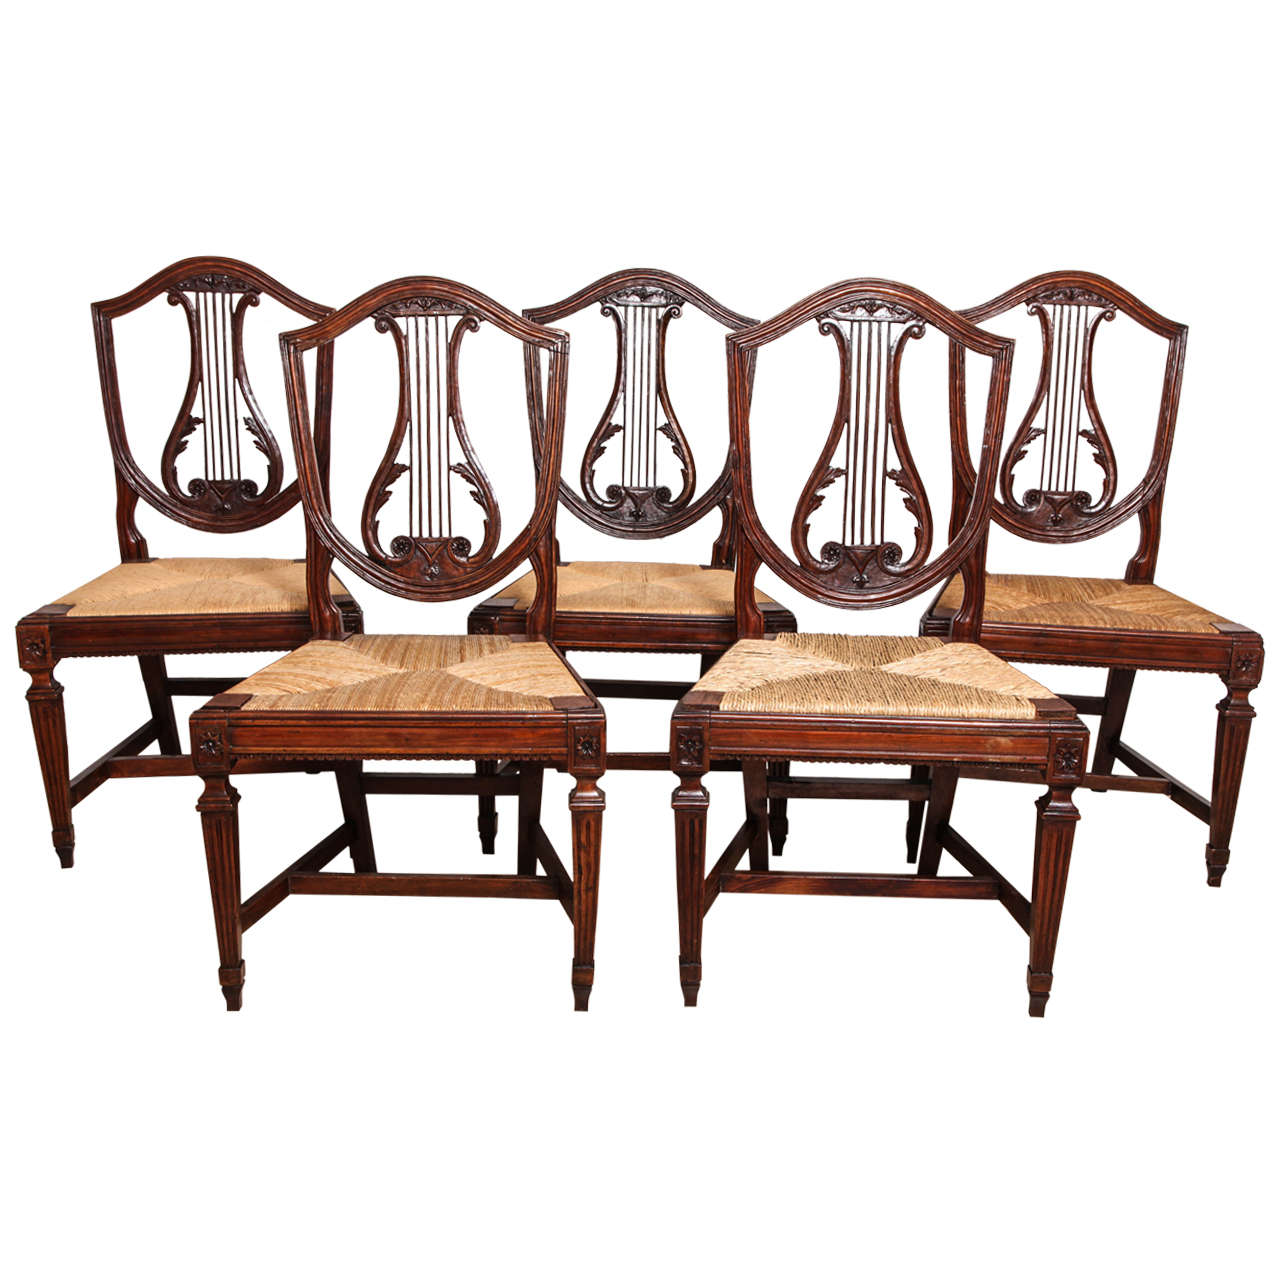 Delicieux Set Of Five Italian Neoclassical Walnut, Lyre Back Side Chairs